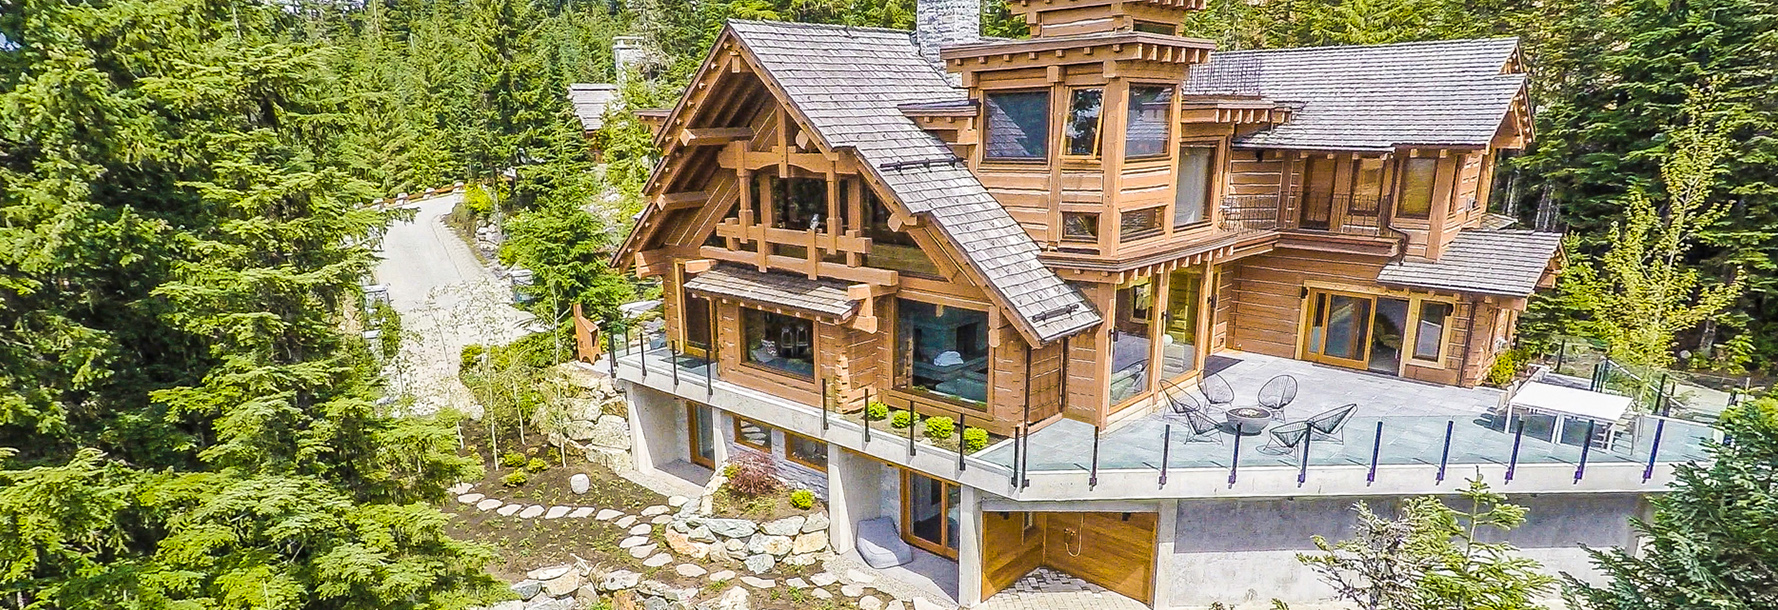 Home Luxury Villa Chalet Vacation Rentals Whistler: whistler cabin rentals